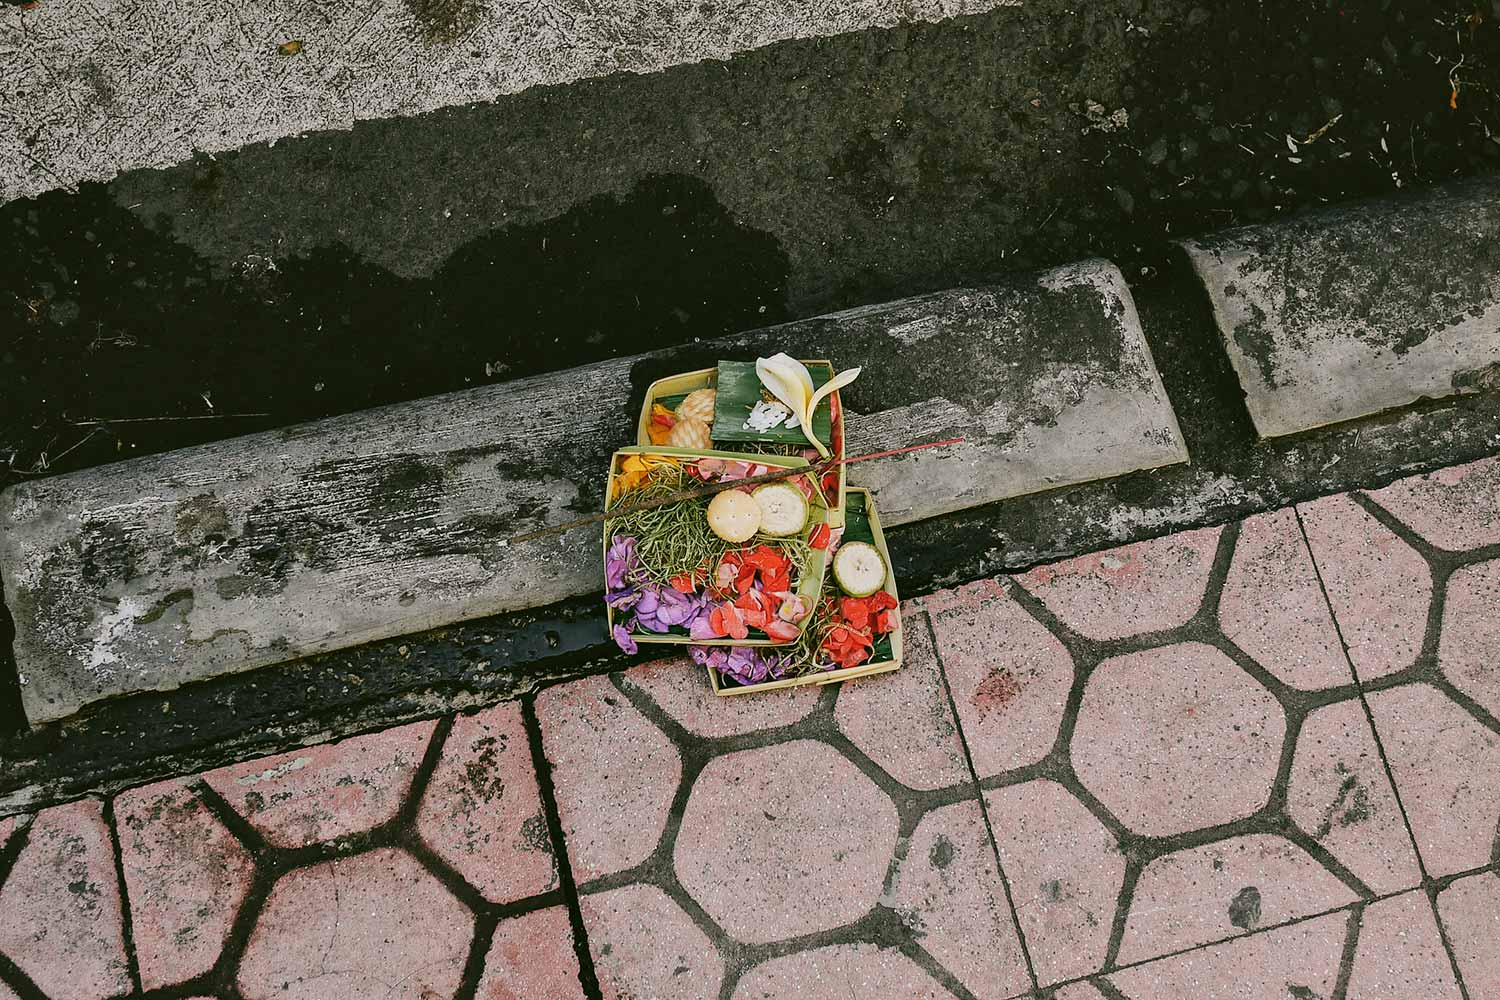 Offerings on the floor